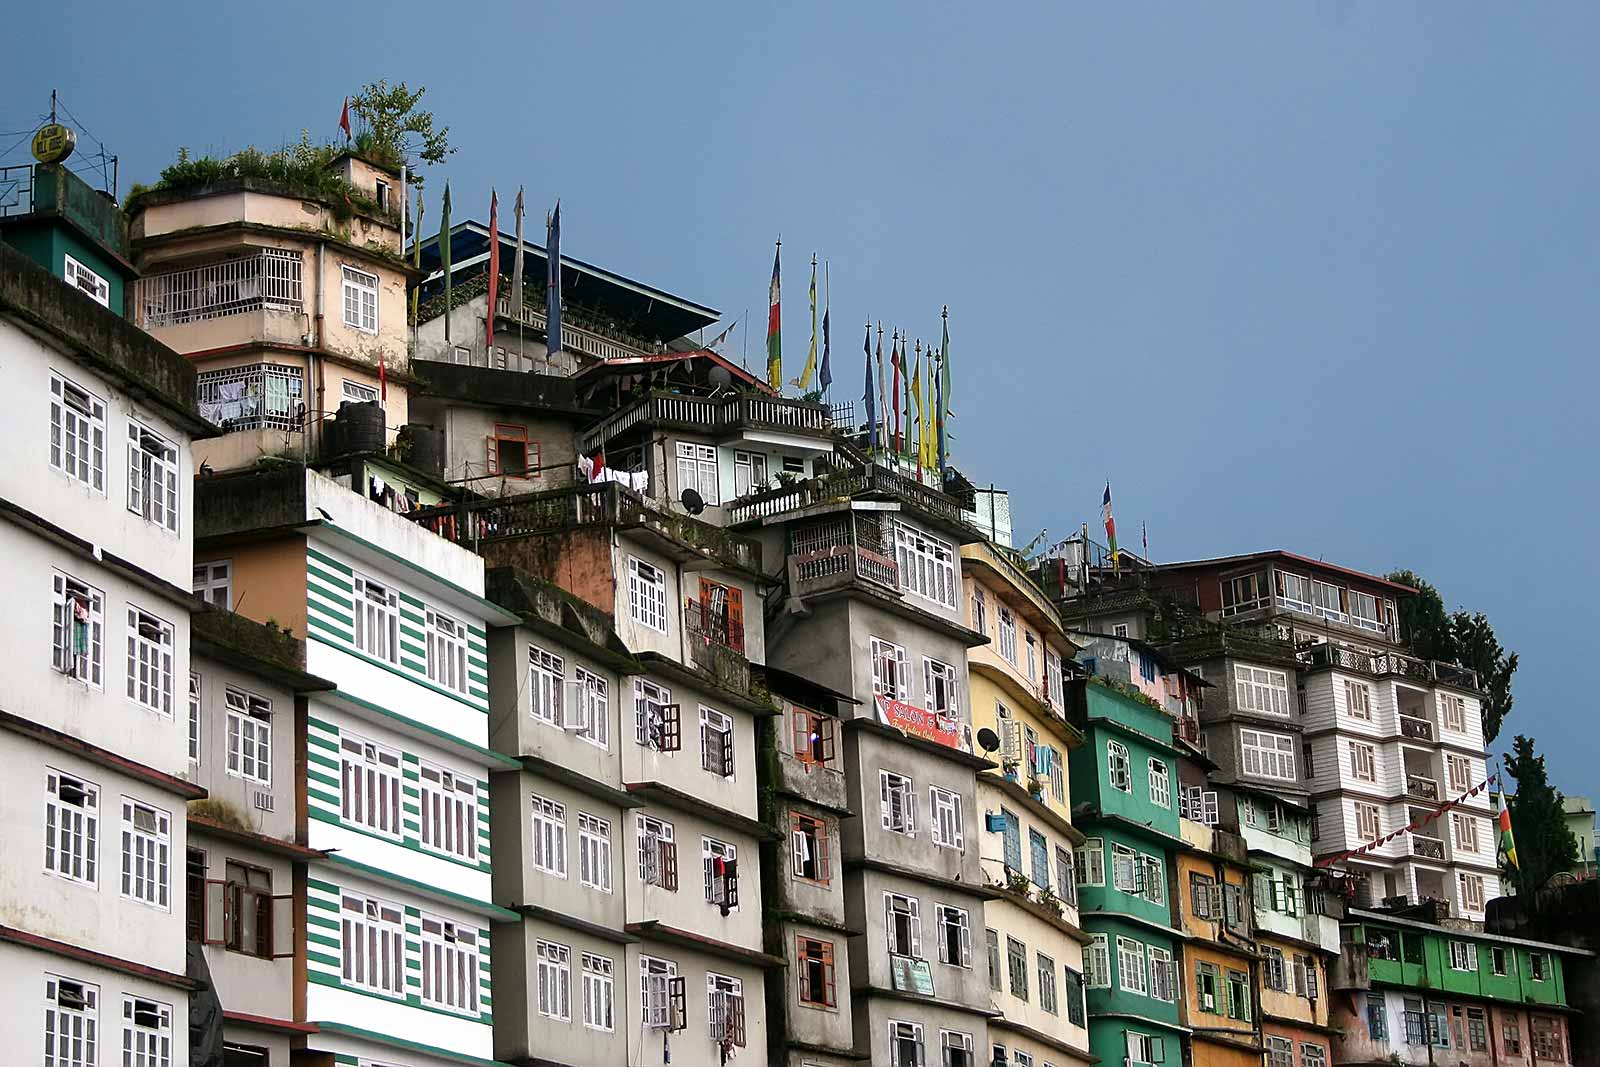 The buildings of Darjeeling, India.